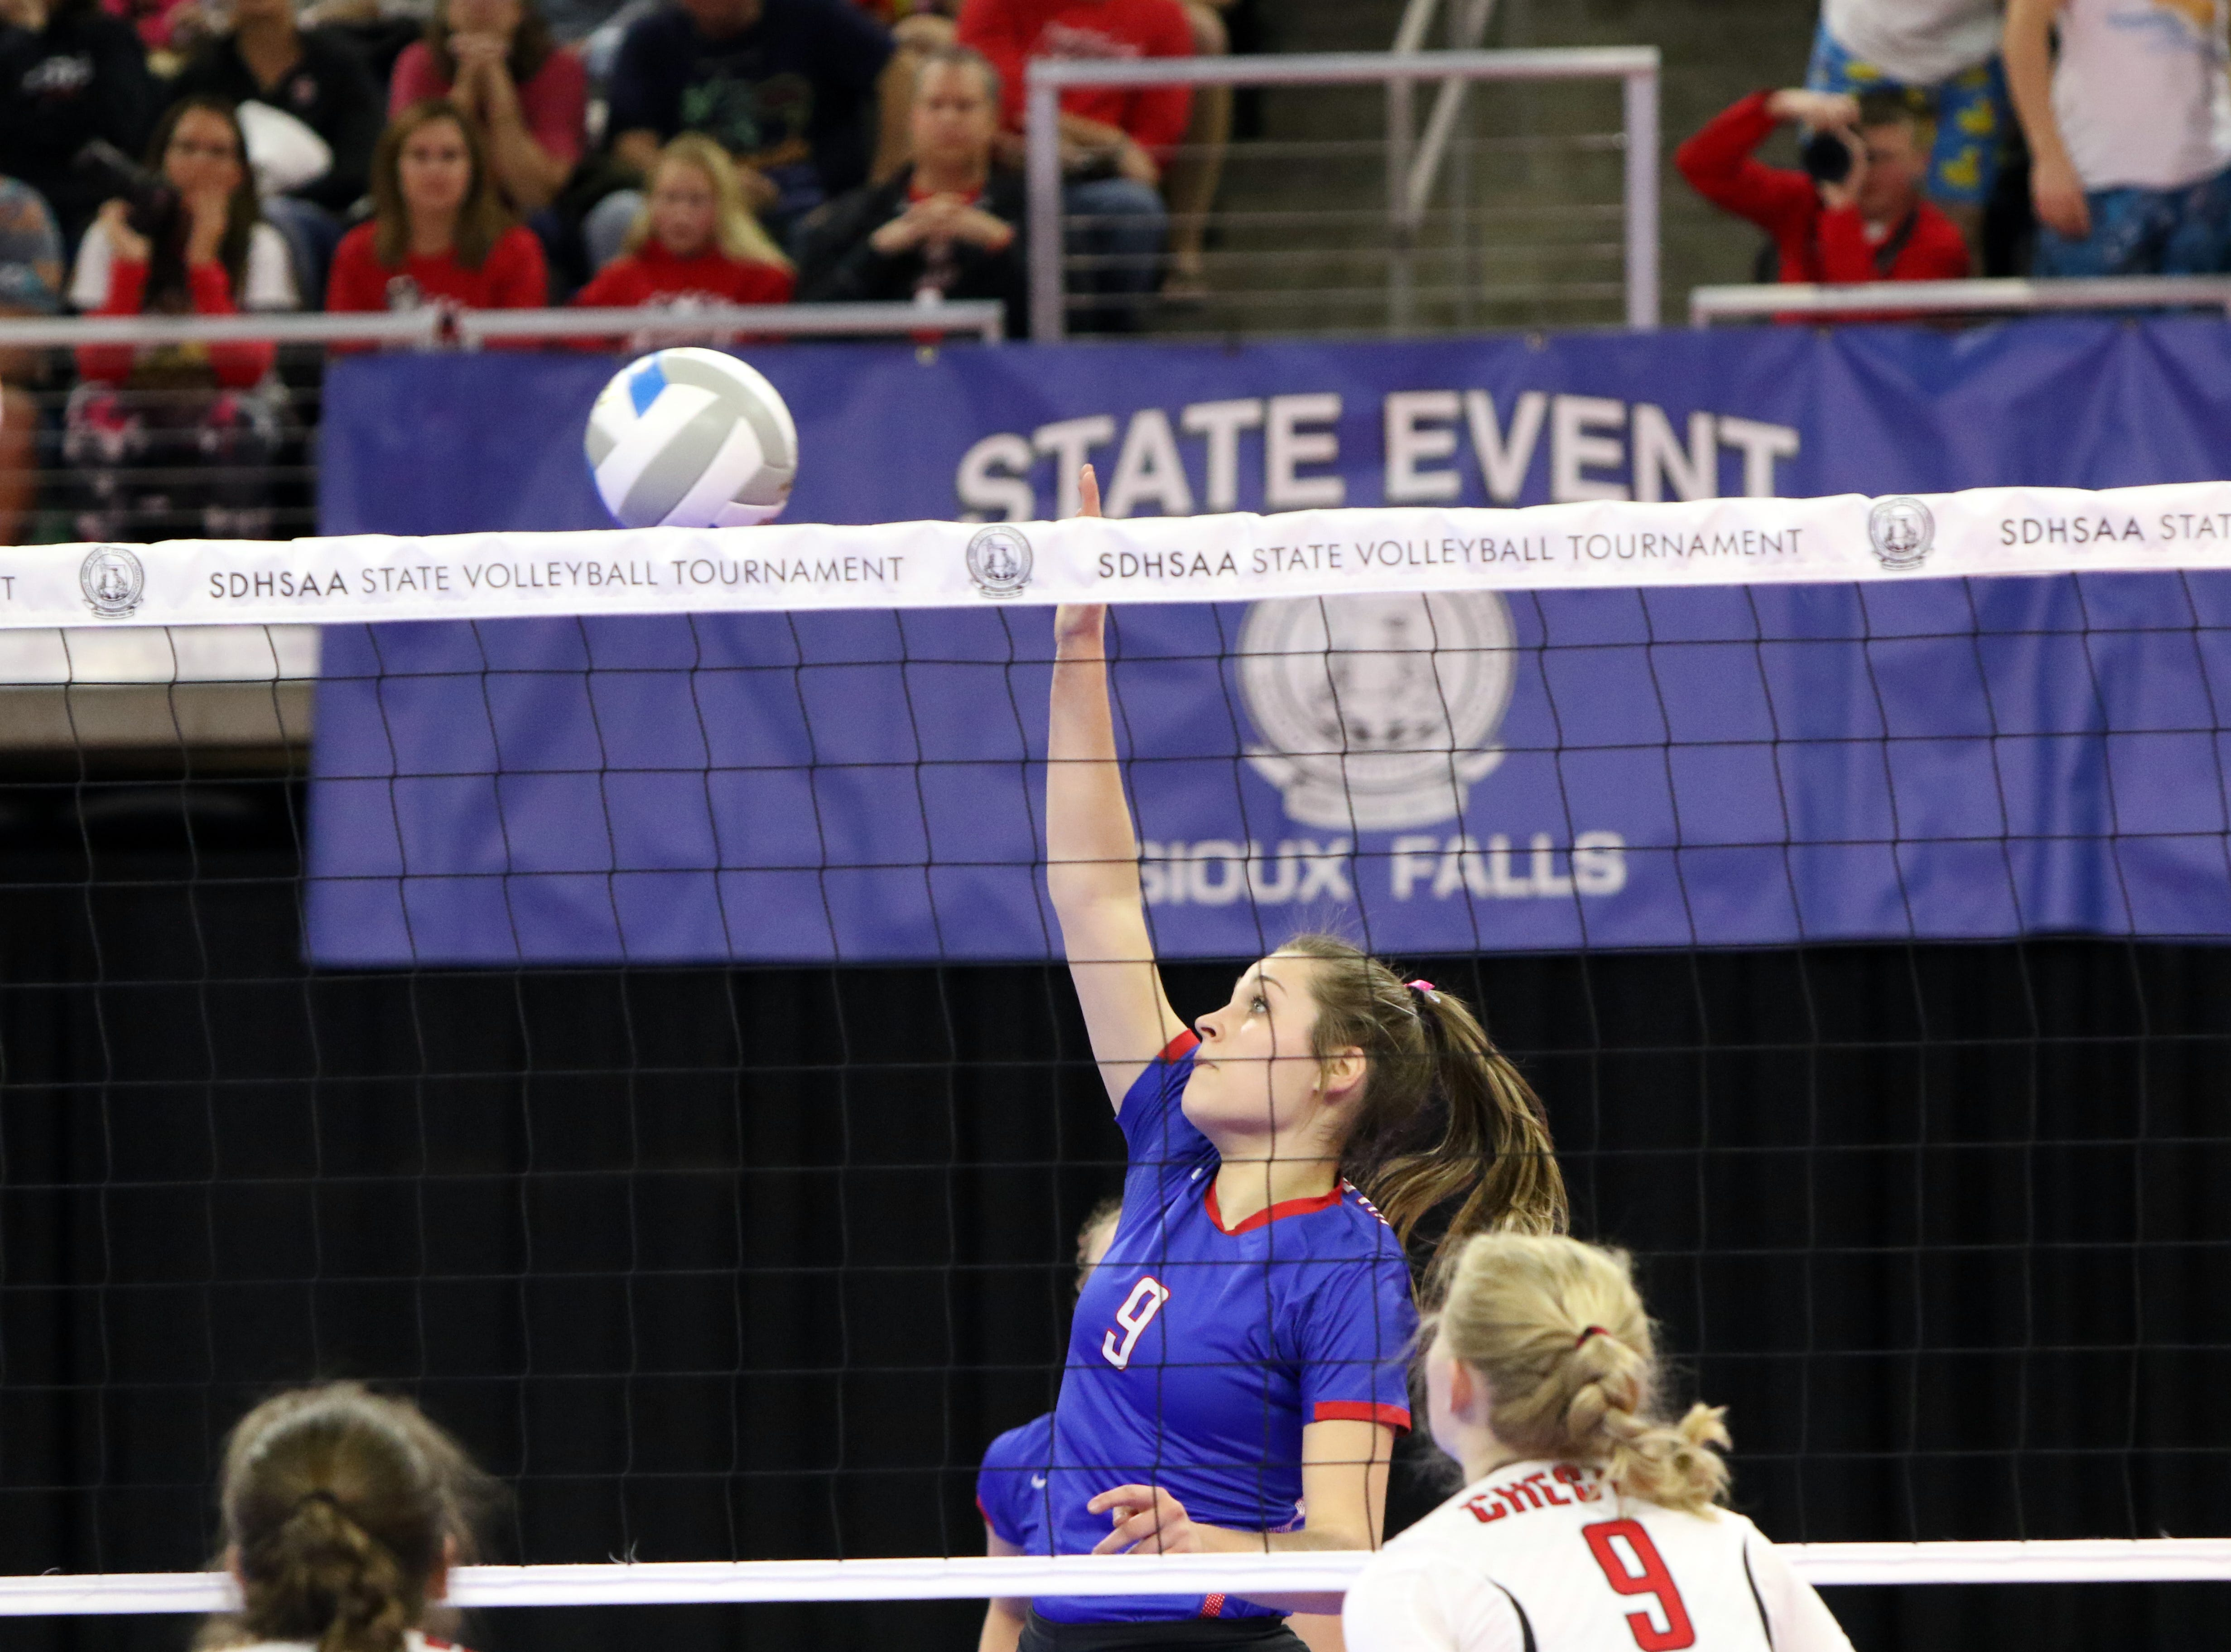 Ashley Fischbach of Warner taps the ball over the net between Ella Pry (9) and Jennilee Hoyer of Chester Area during the Class B semifinals on Friday in Sioux Falls.